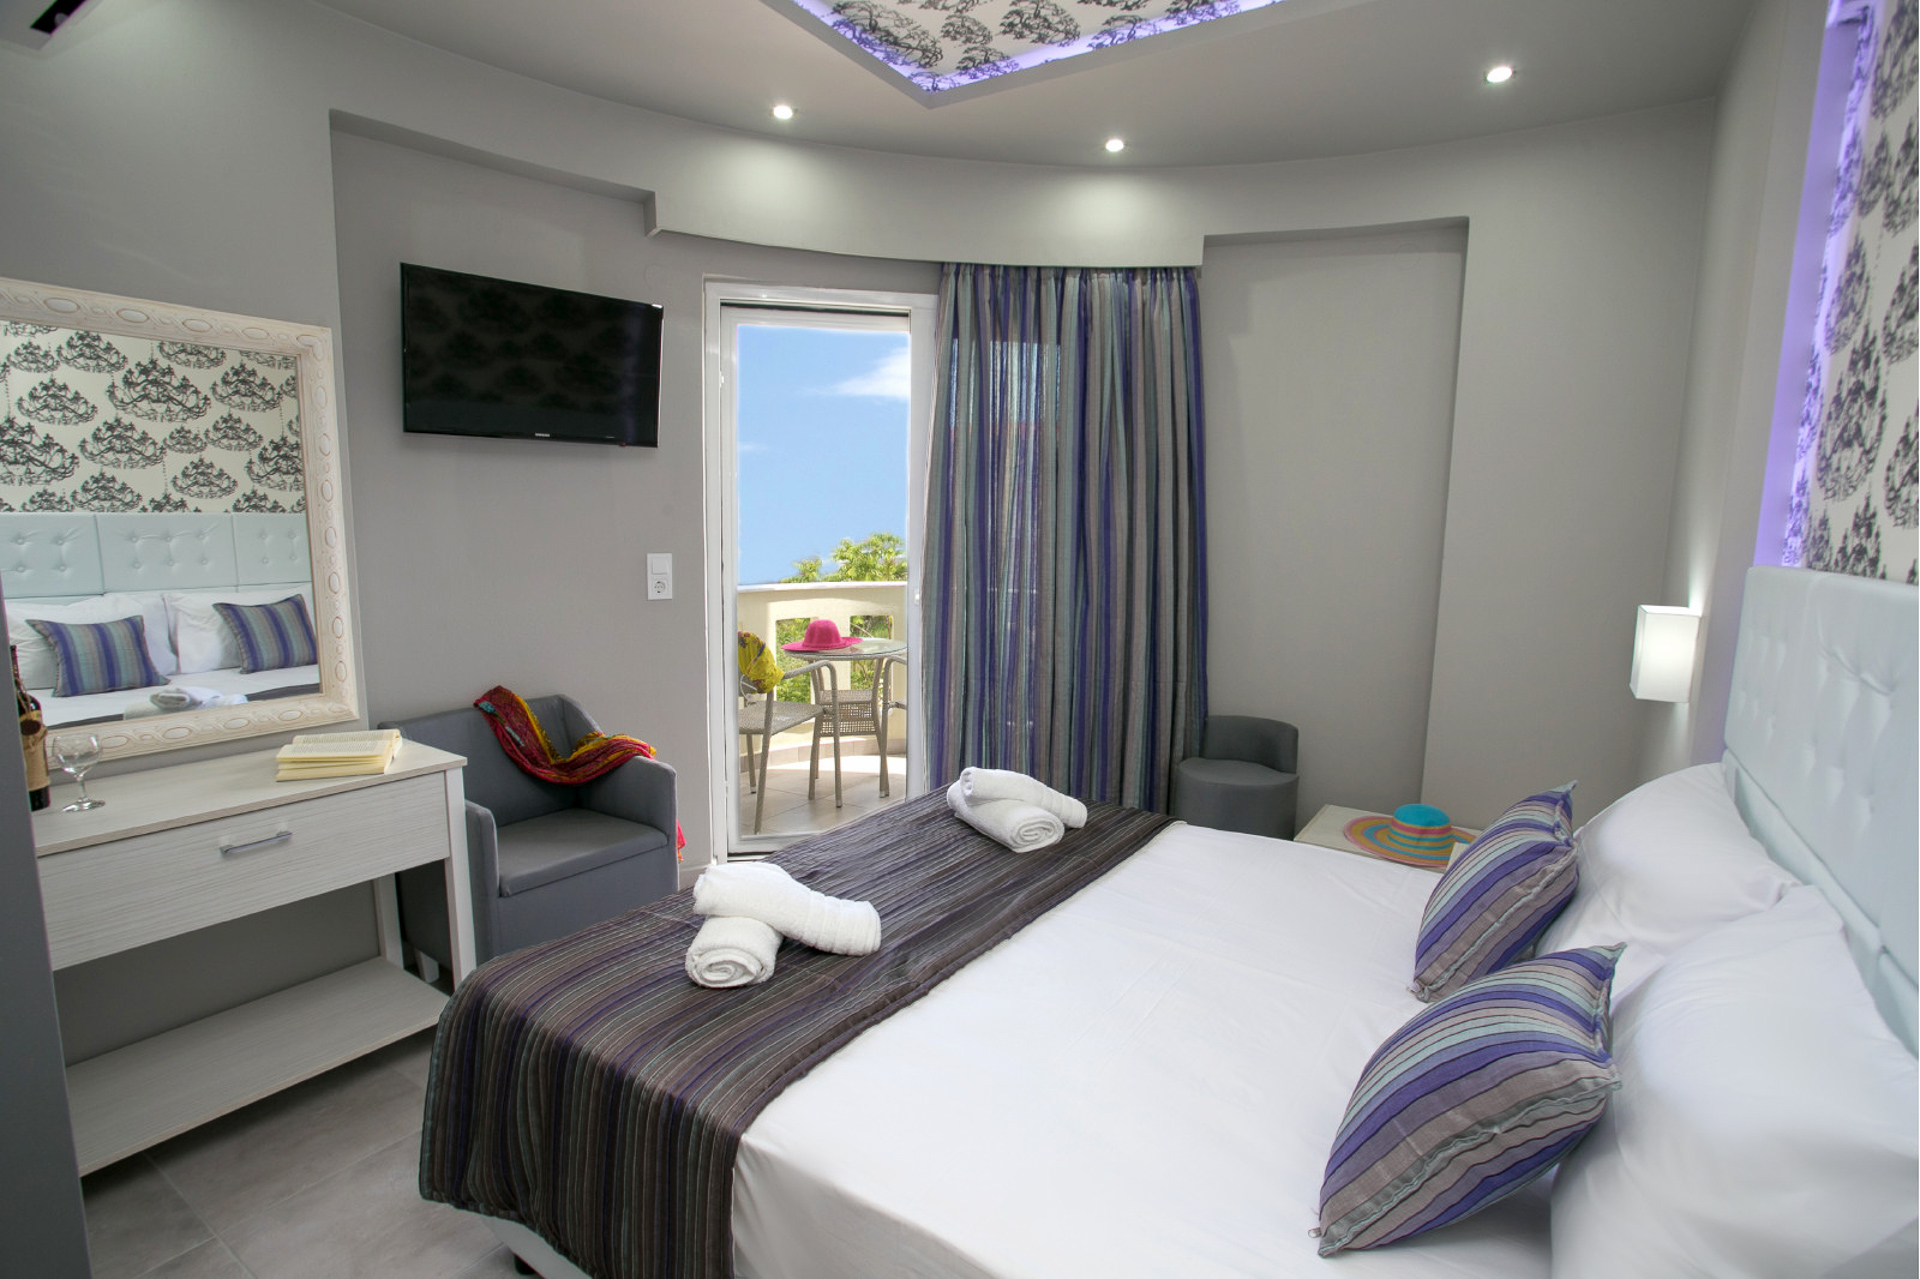 la feyra luxury rooms limenaria thassos diamond room 2